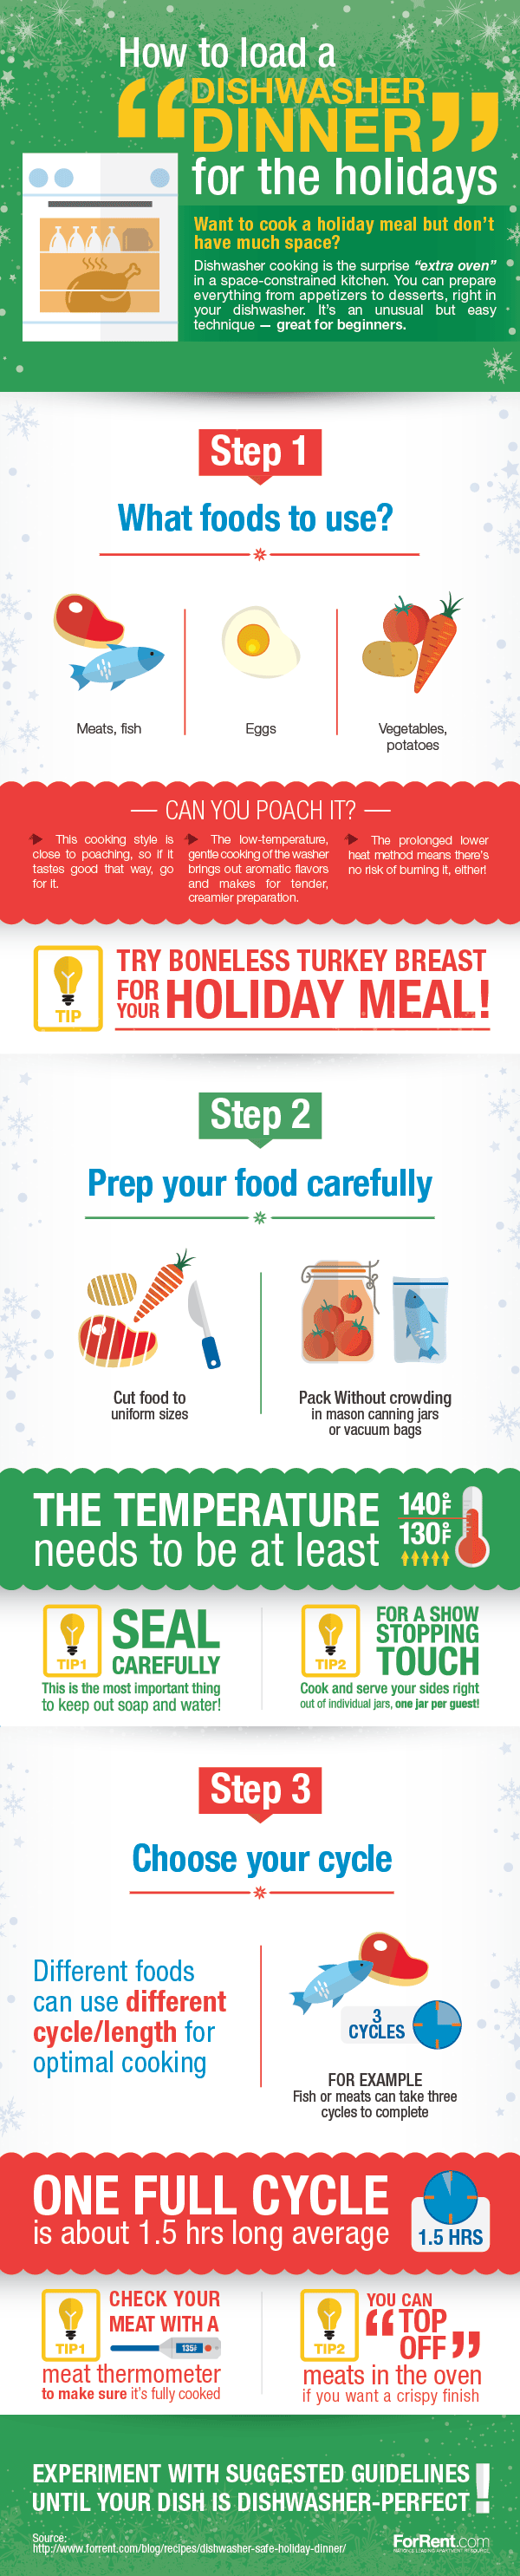 How to Load a Dishwasher-Safe Holiday Dinner Meal